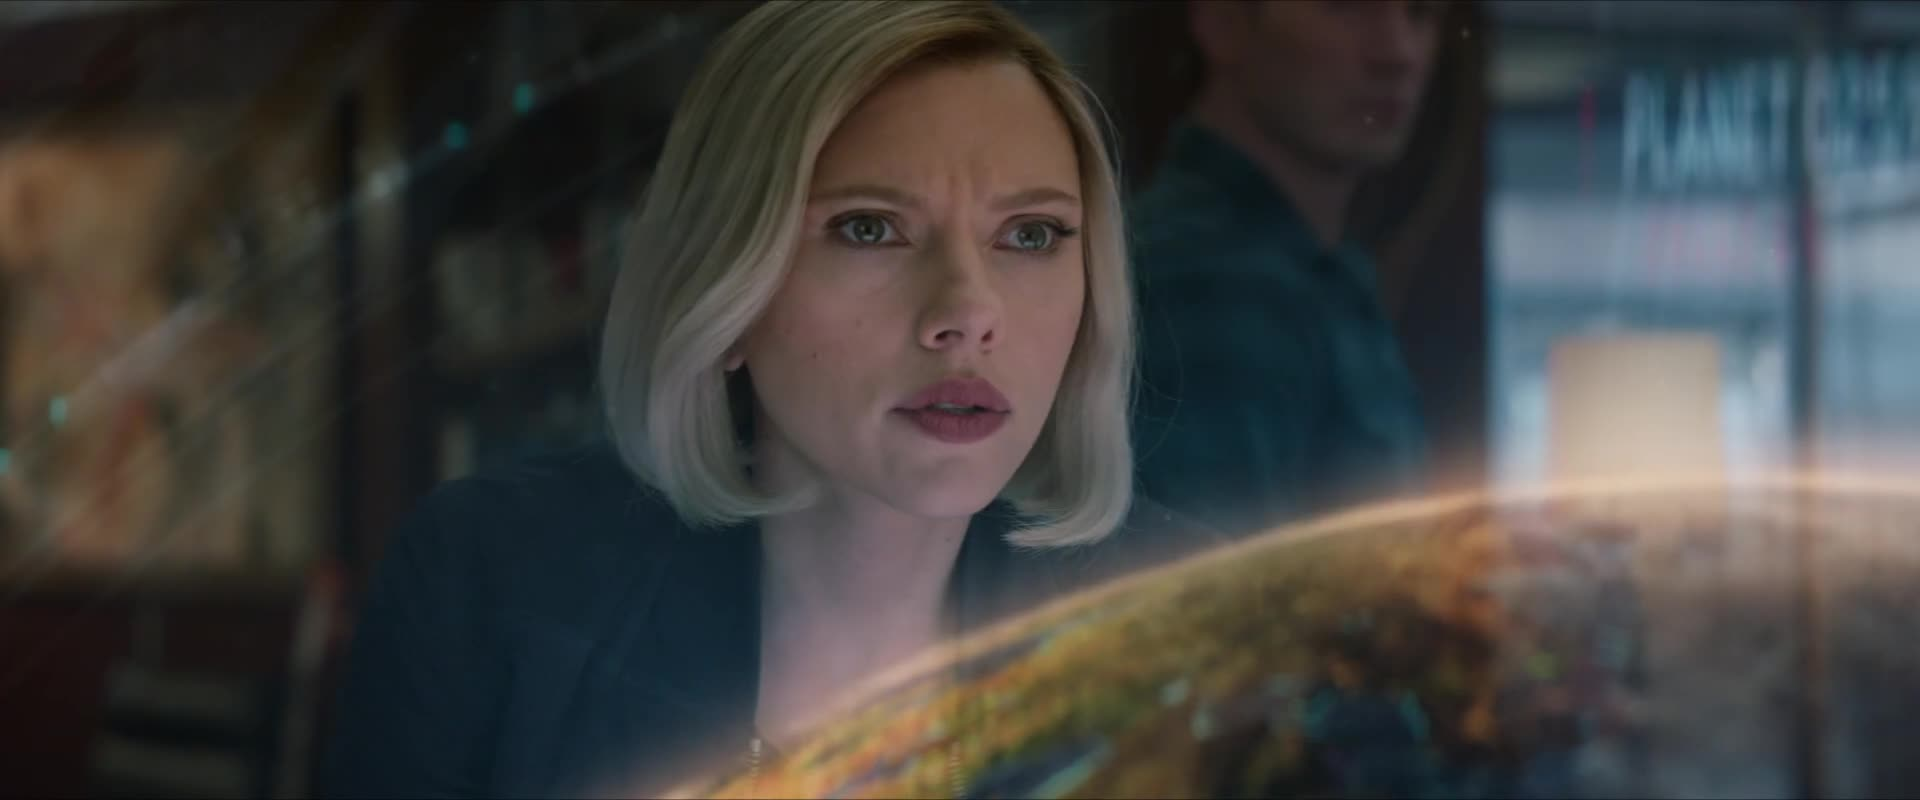 "avengers, avengers: endgame, captian america, comics, end game, endgame, marvel, marvel movies, marvel studios, mcu, Marvel Studios' Avengers: Endgame | ""Found"" TV Spot GIFs"